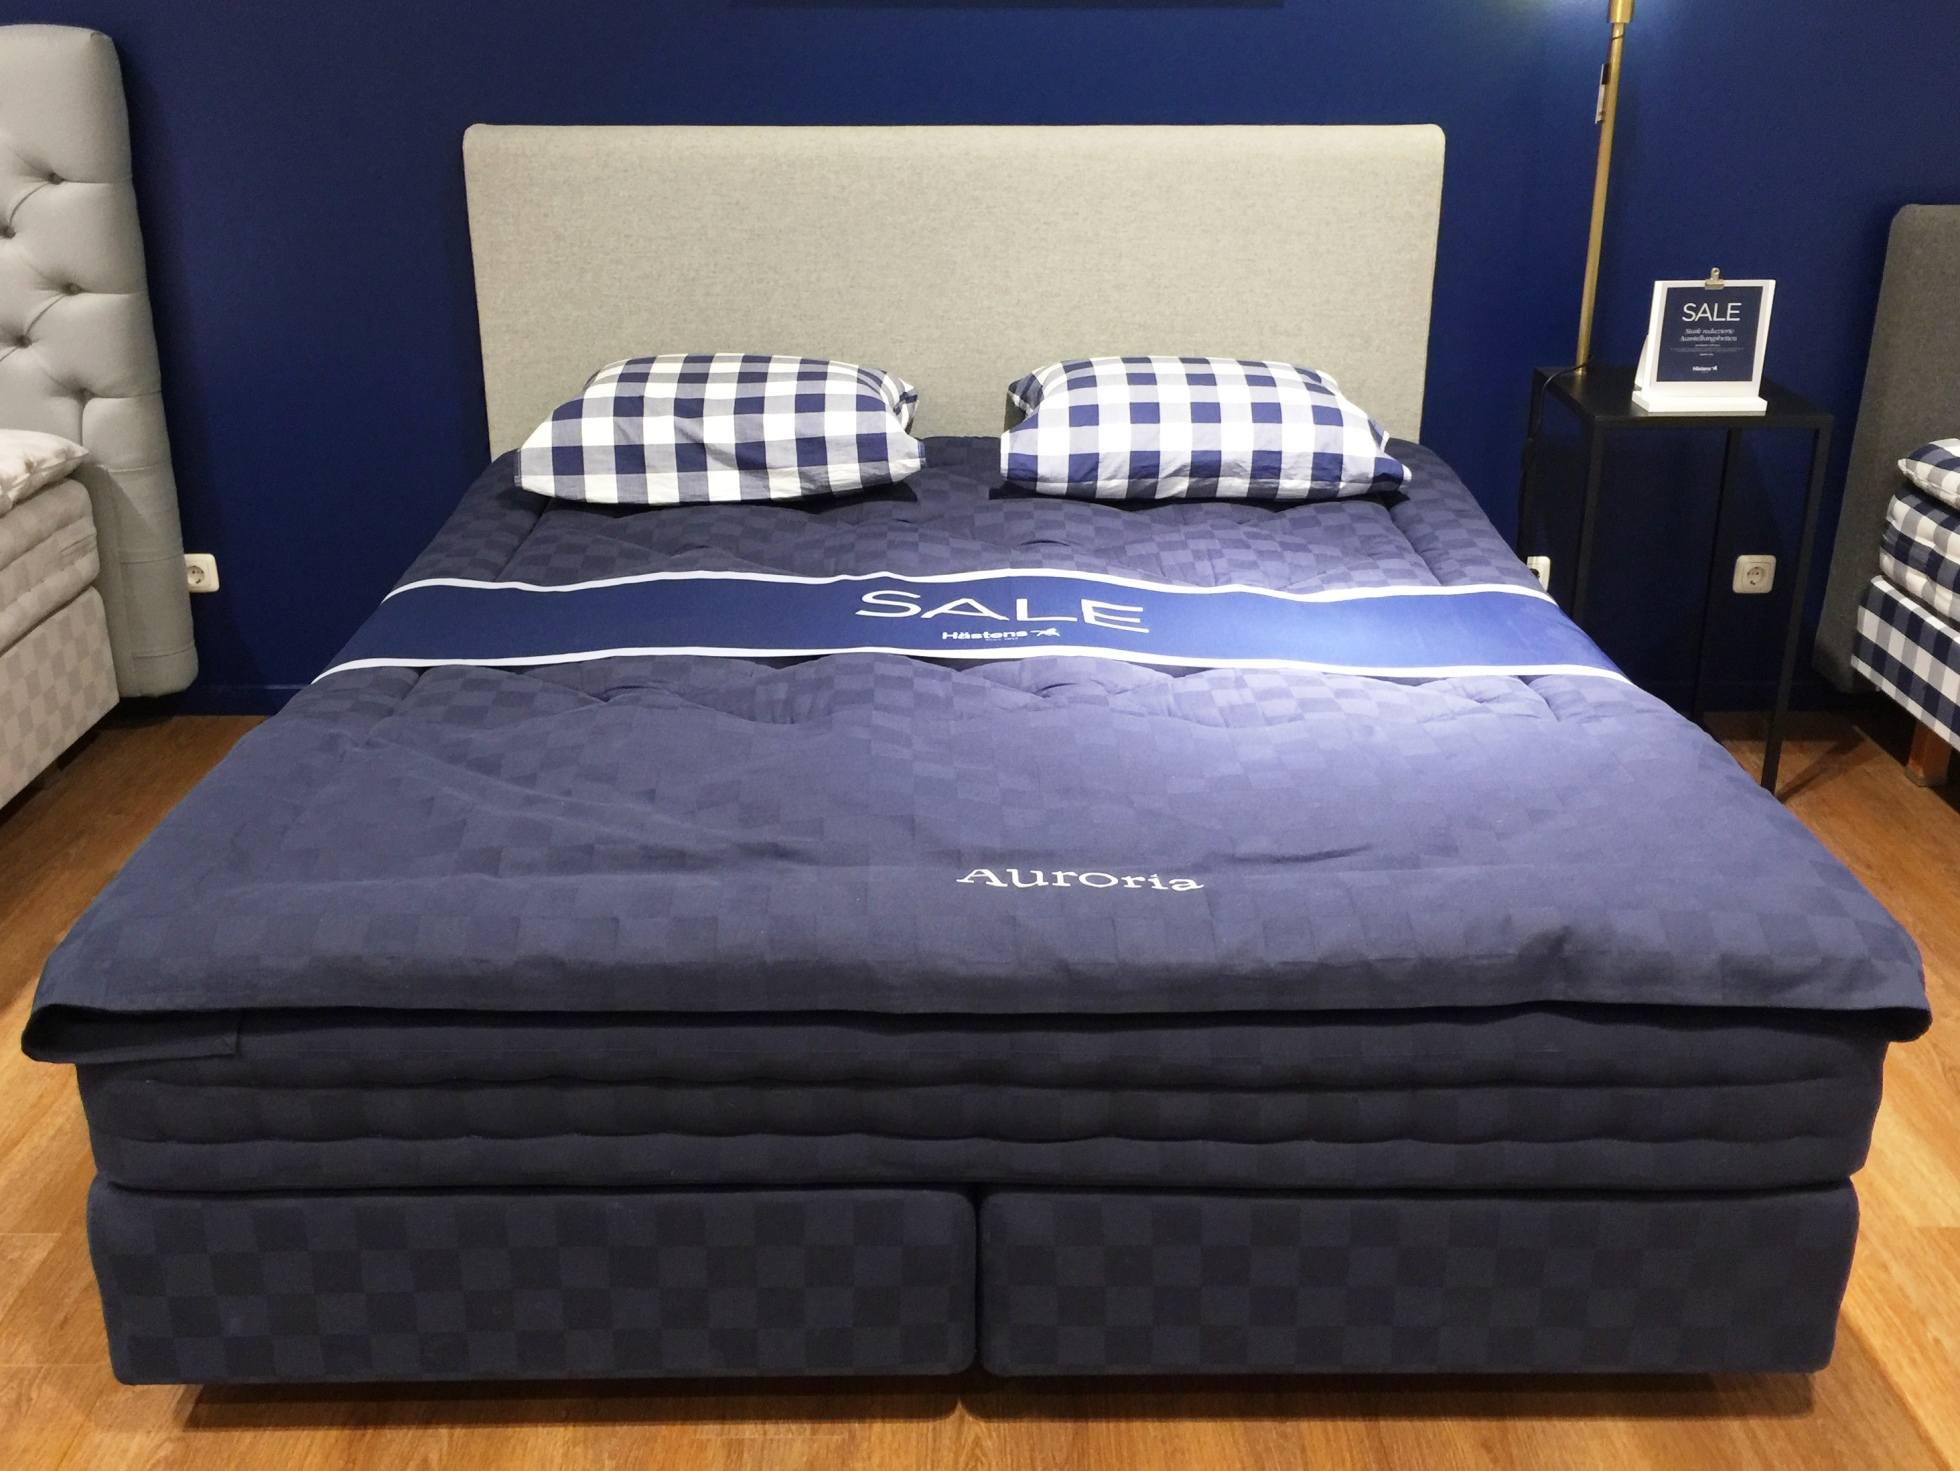 h stens boxspringbett auroria solid royal navy check. Black Bedroom Furniture Sets. Home Design Ideas